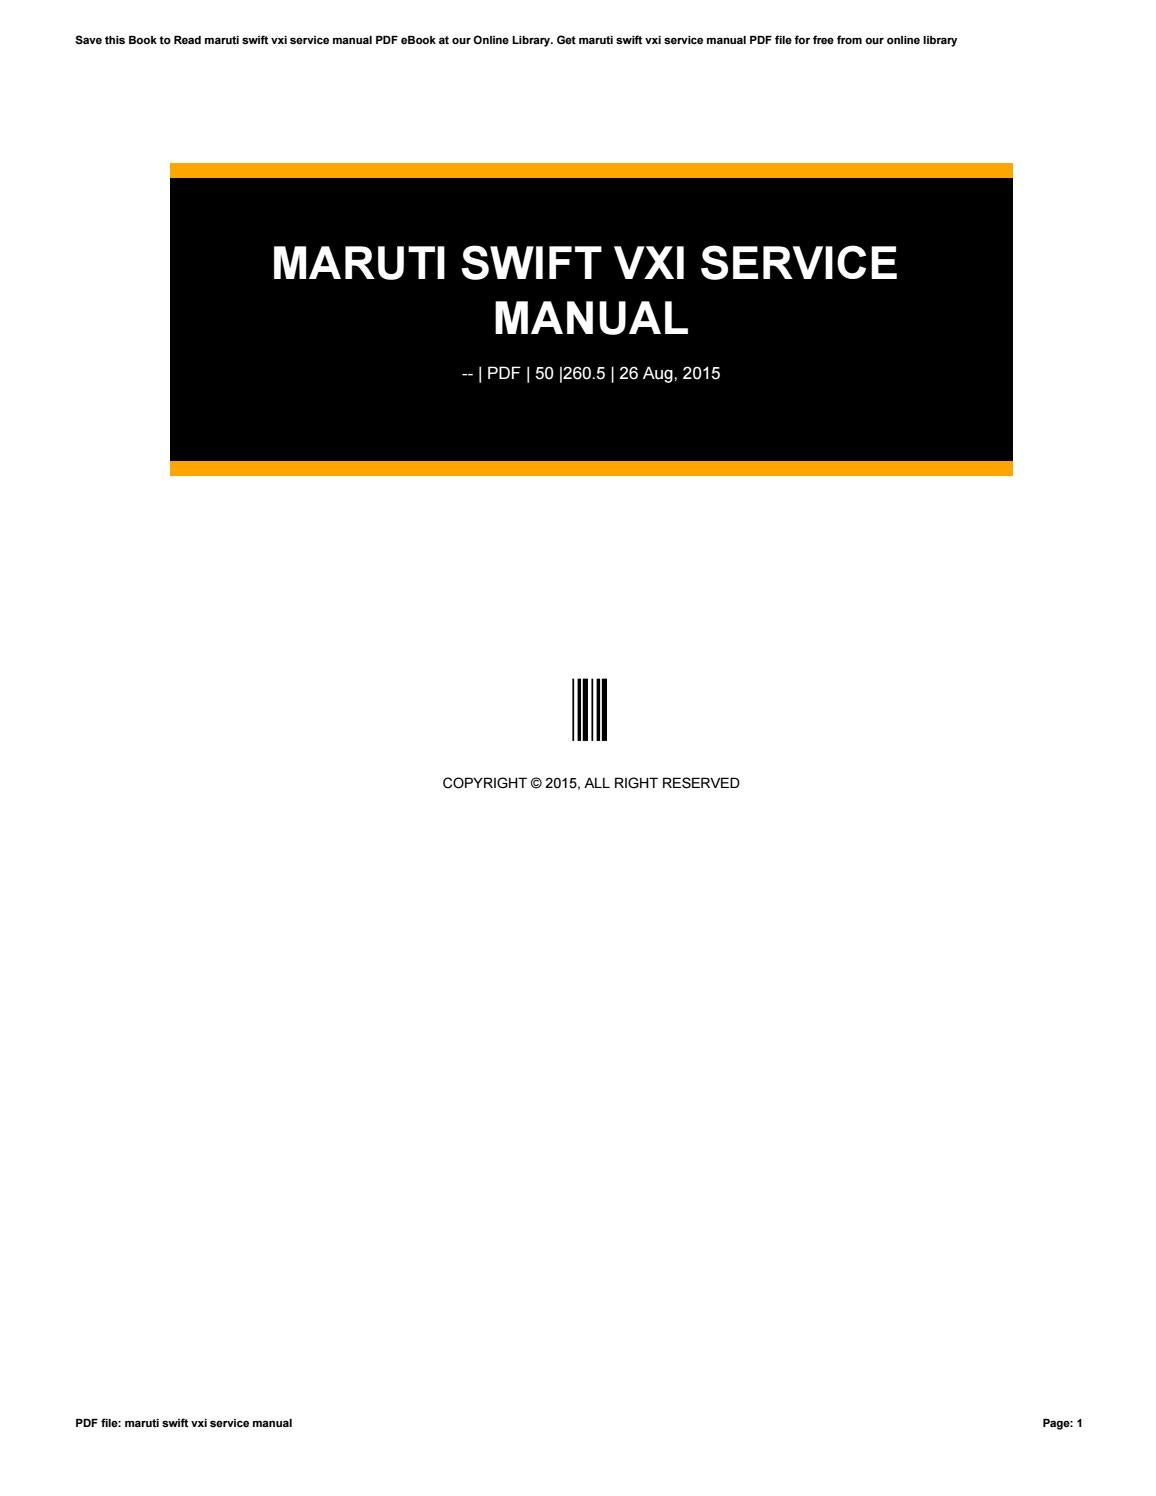 Maruti swift vxi service manual by verro07sailah - issuu